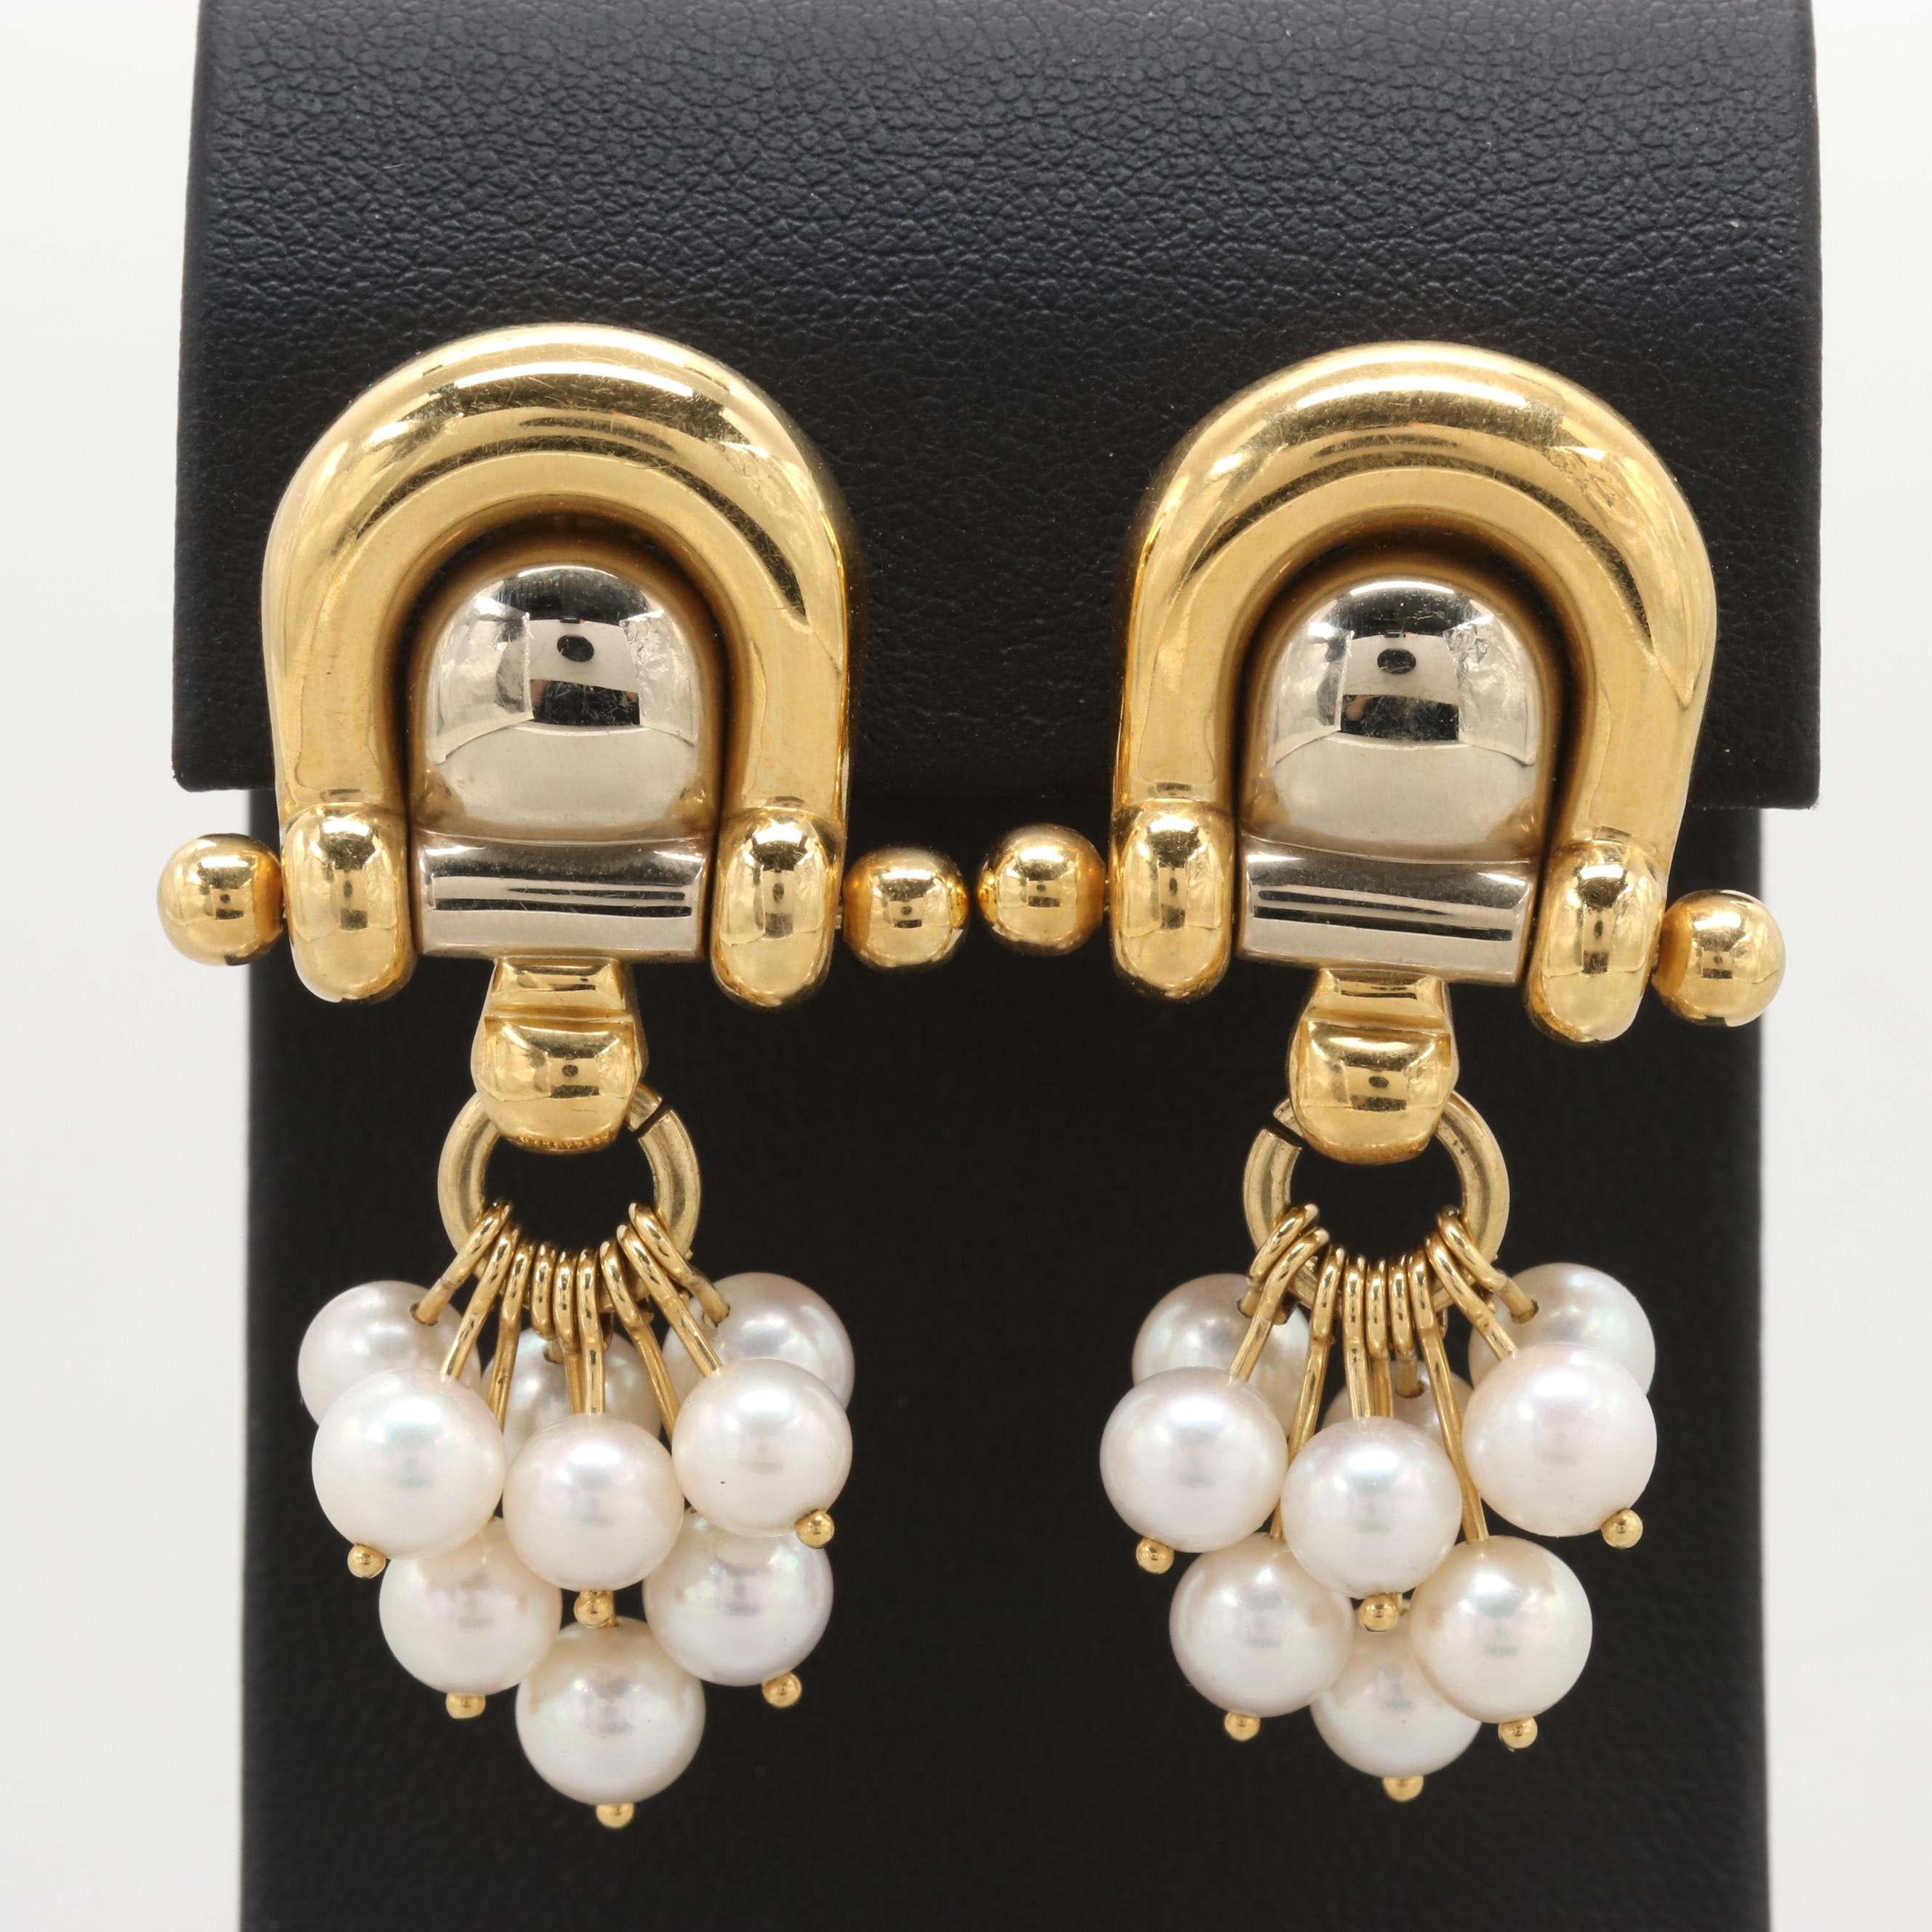 18K Two Tone Gold Earrings with Cultured Pearl Clusters